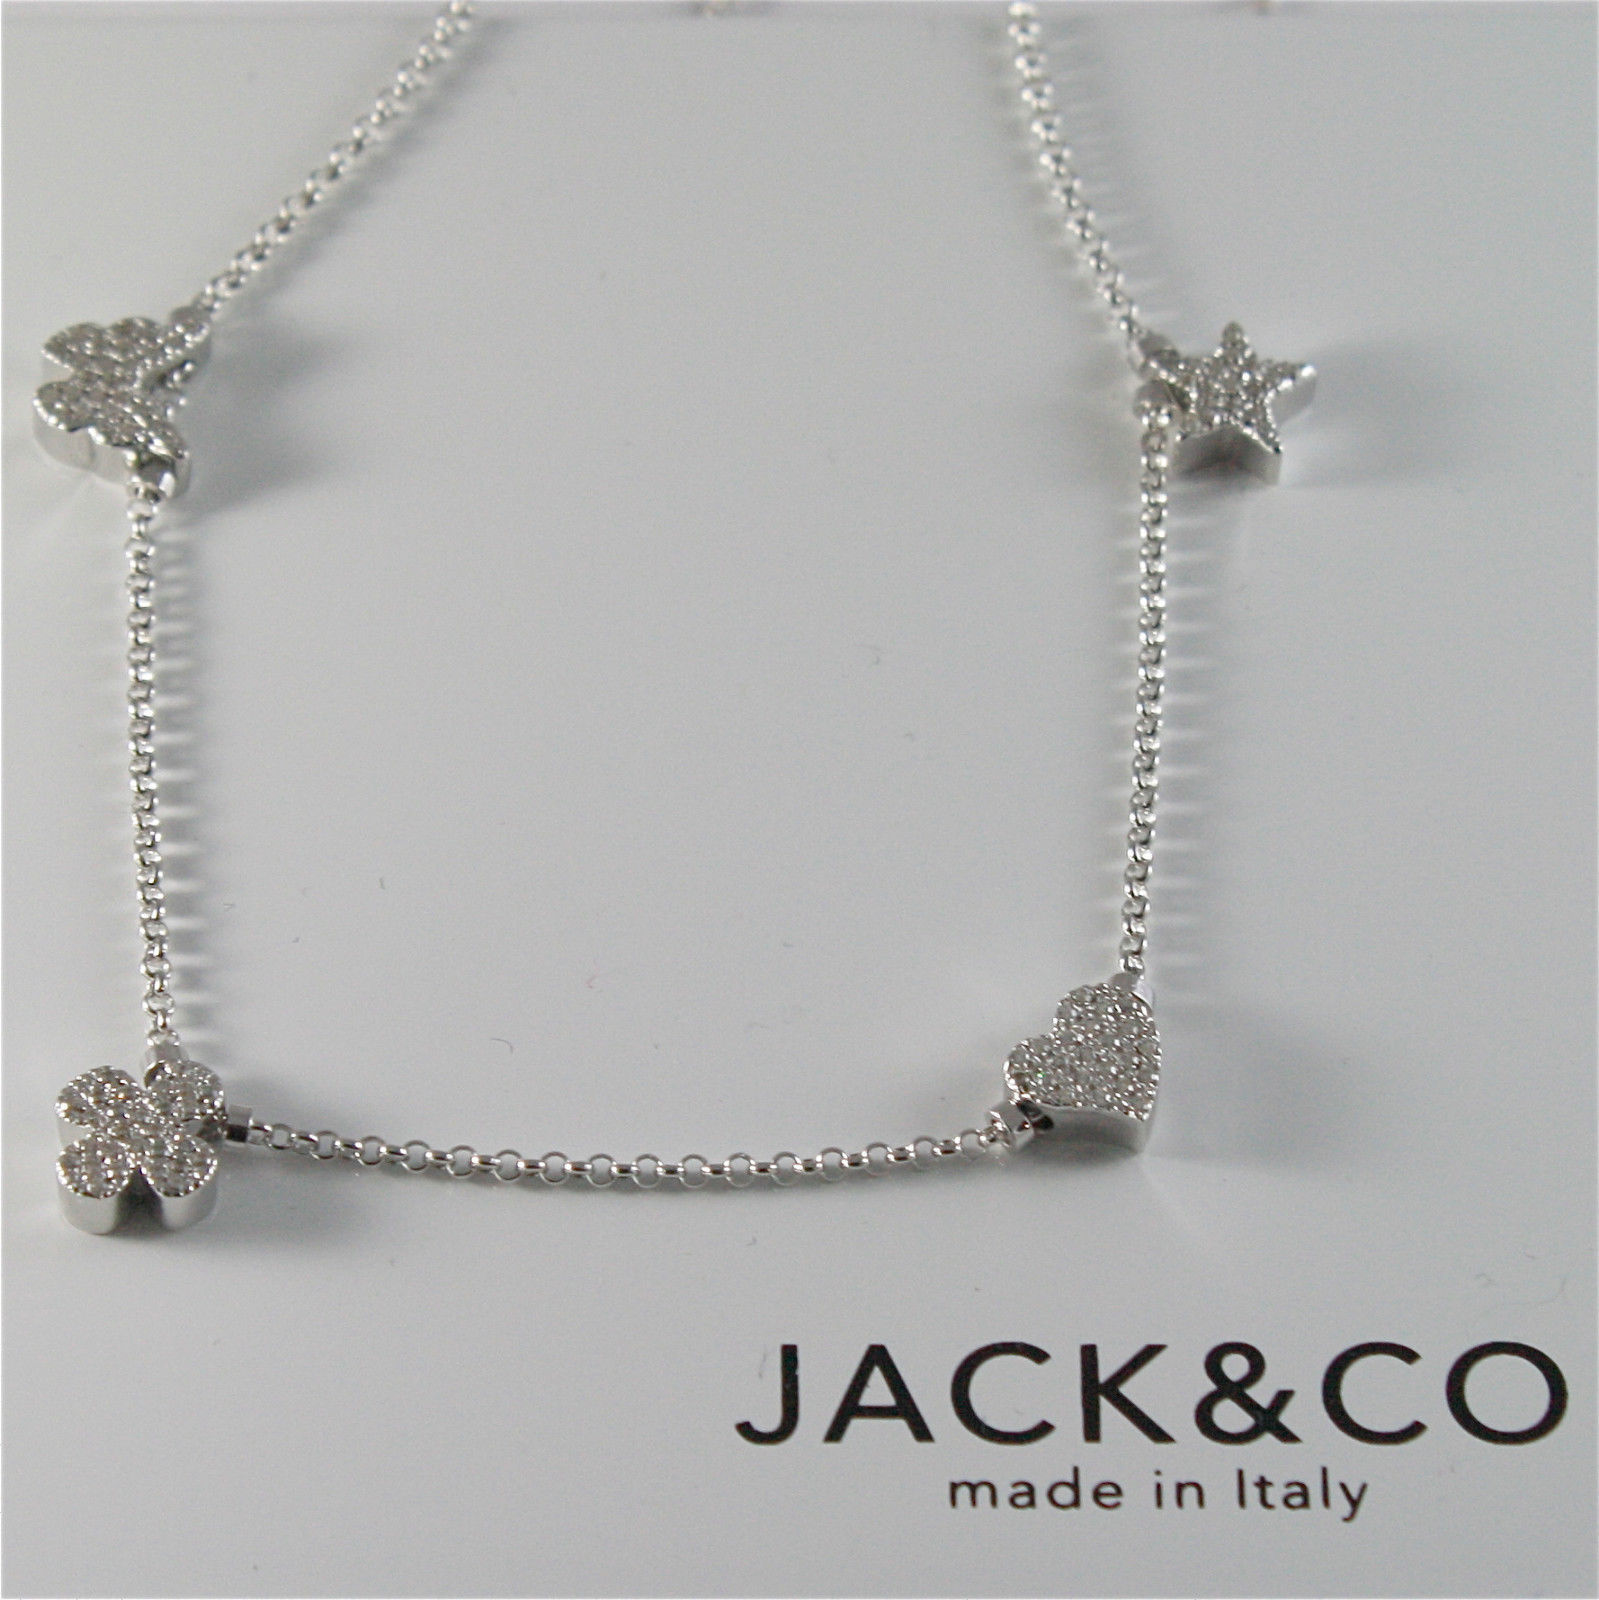 925 STERLING SILVER NECKLACE JACK&CO WITH FOUR-LEAF CLOVER HEART STELLA AND